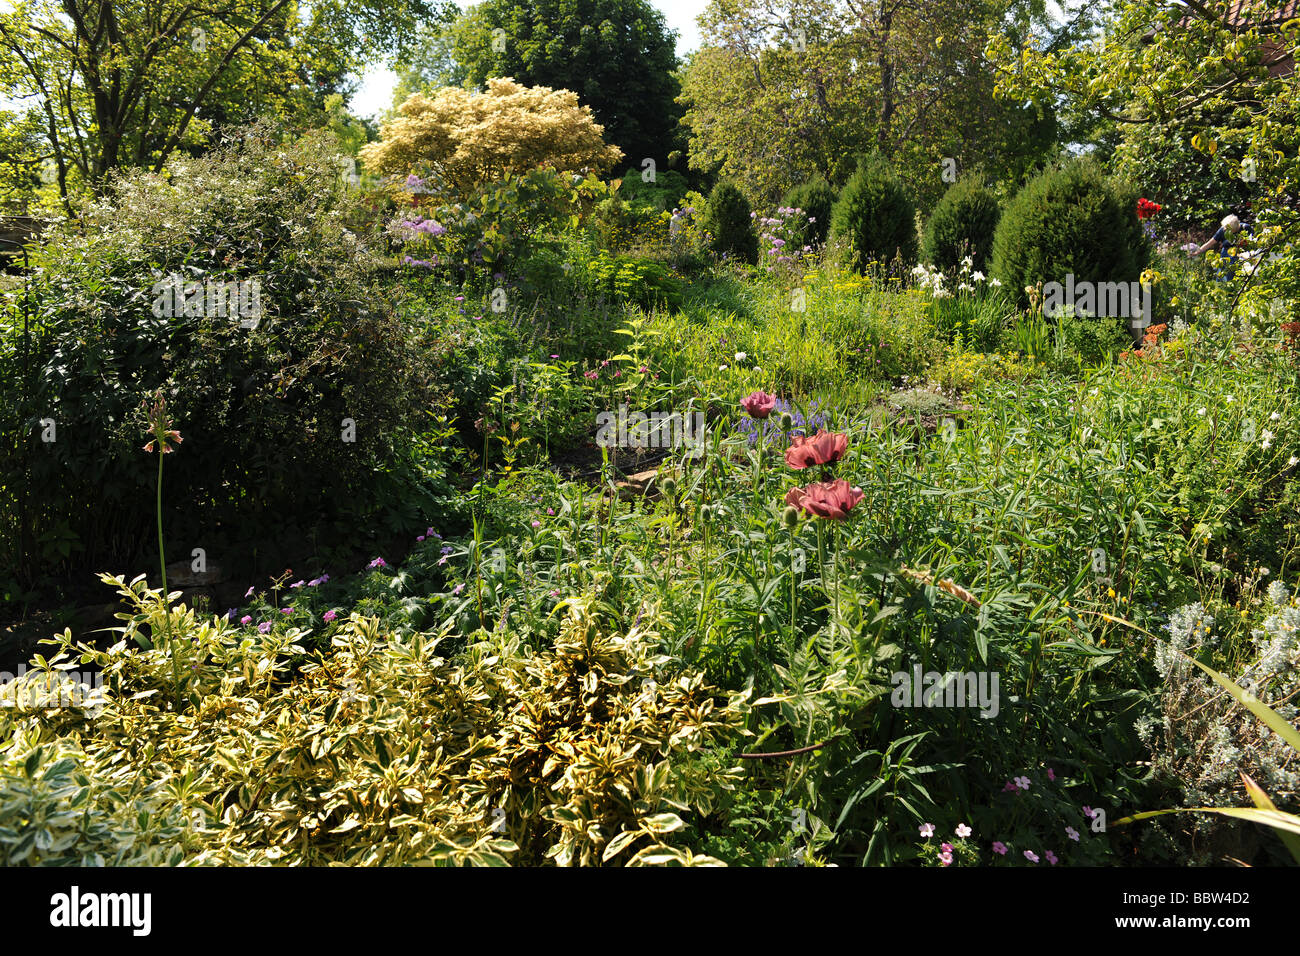 English Garden at East Lambrook Manor Gardens, South Petherton, Somerset designed by Margery Fish - Stock Image